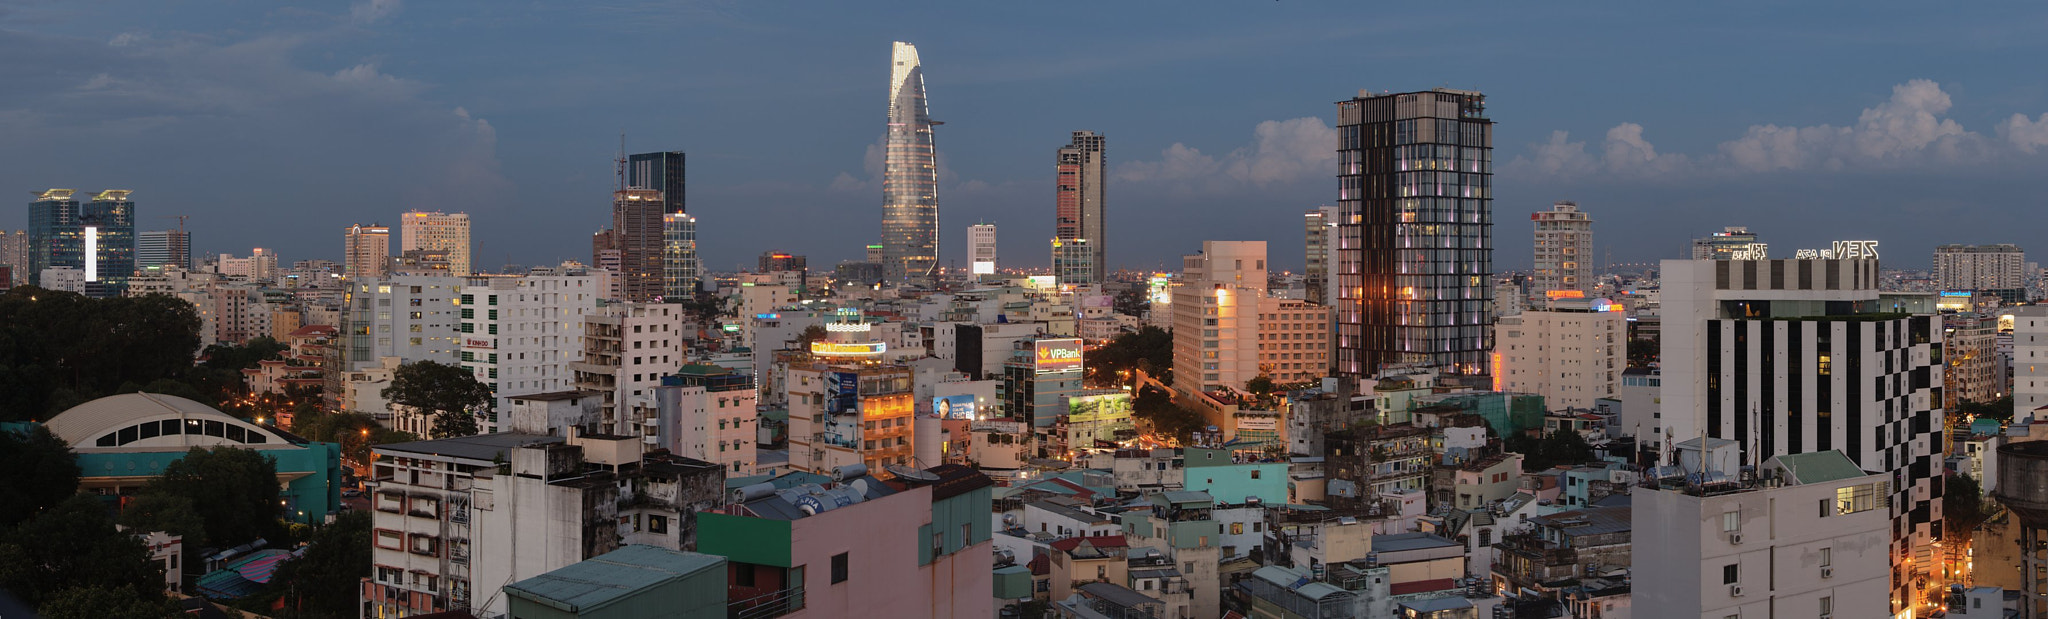 Photograph Saigon Skyline by Seva Gluschenko on 500px